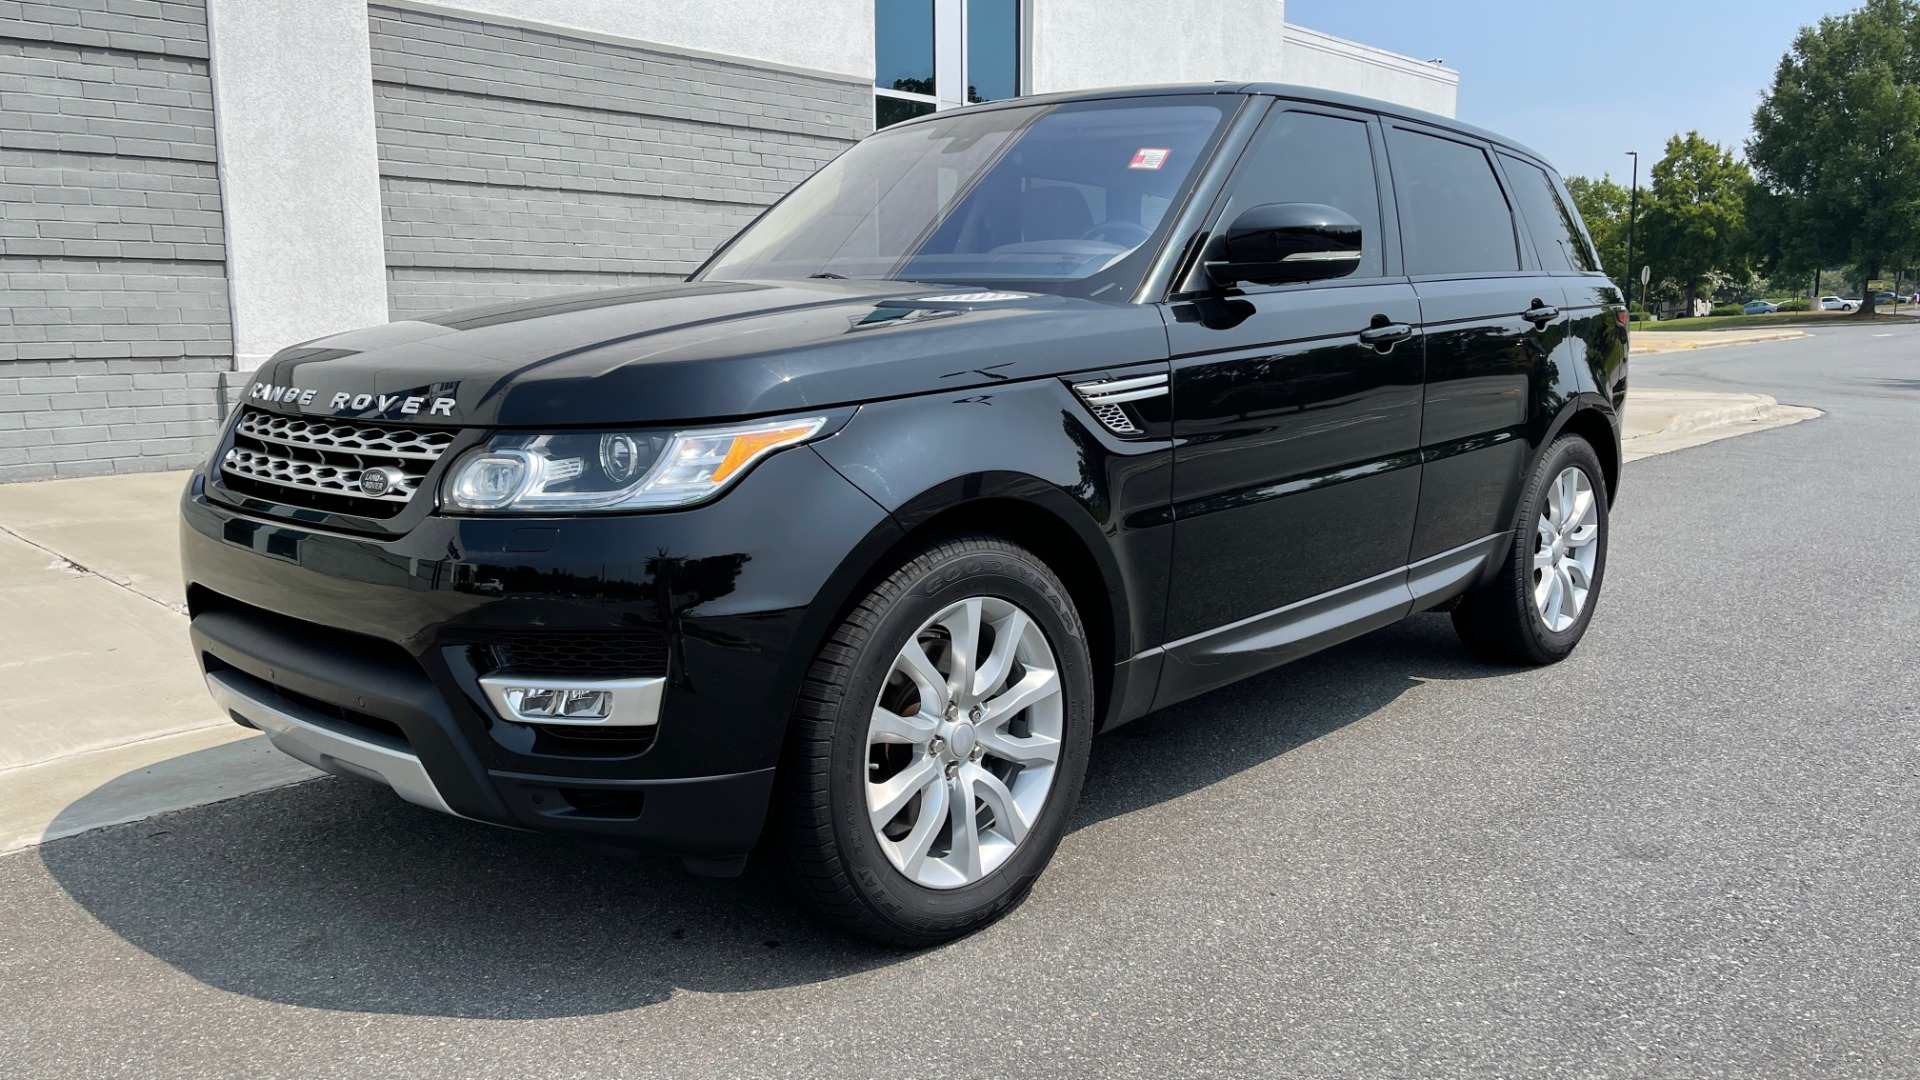 Used 2016 Land Rover RANGE ROVER SPORT V6 HSE / NAV / PANO-ROOF / MERIDIAN / CONSOLE COOLER / CAMERAS for sale $40,995 at Formula Imports in Charlotte NC 28227 3